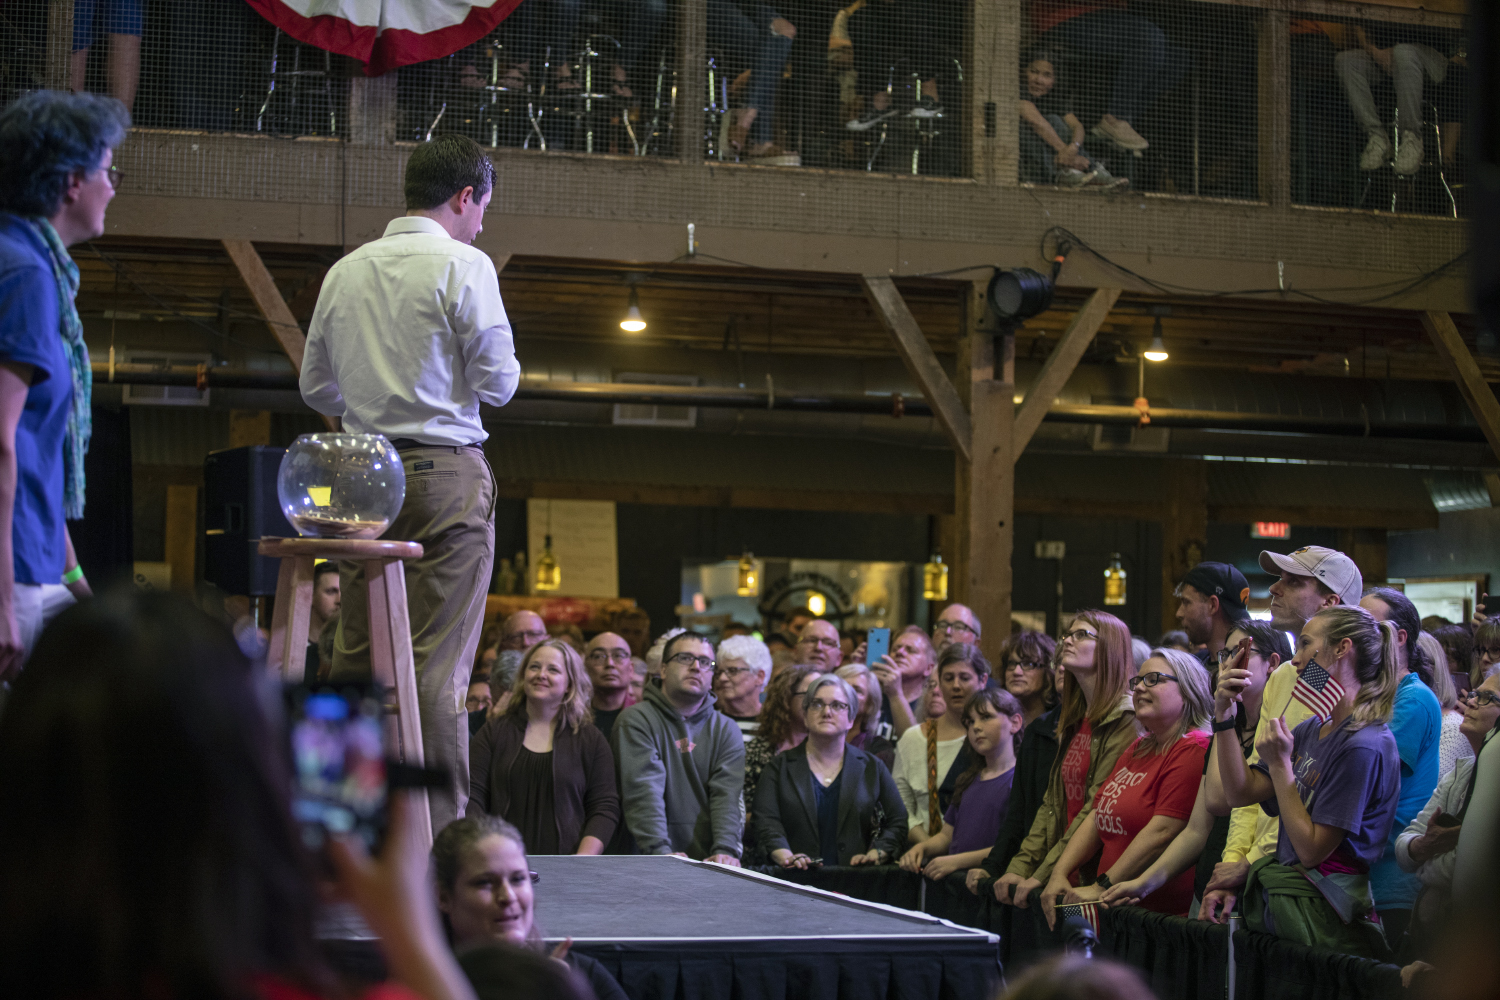 2020+Democratic+presidential-nomination+candidate+Pete+Buttigieg+responds+to+a+young+attendee%27s+question+about+Russian+President+Vladimir+Putin+during+the+town+hall+at+the+Wildwood+Smokehouse+%26+Saloon+on+May+18%2C+2019.+The+Iowa+City+event+marked+the+third+of+four+Iowa+campaign+stops+for+Buttigieg+this+weekend.+